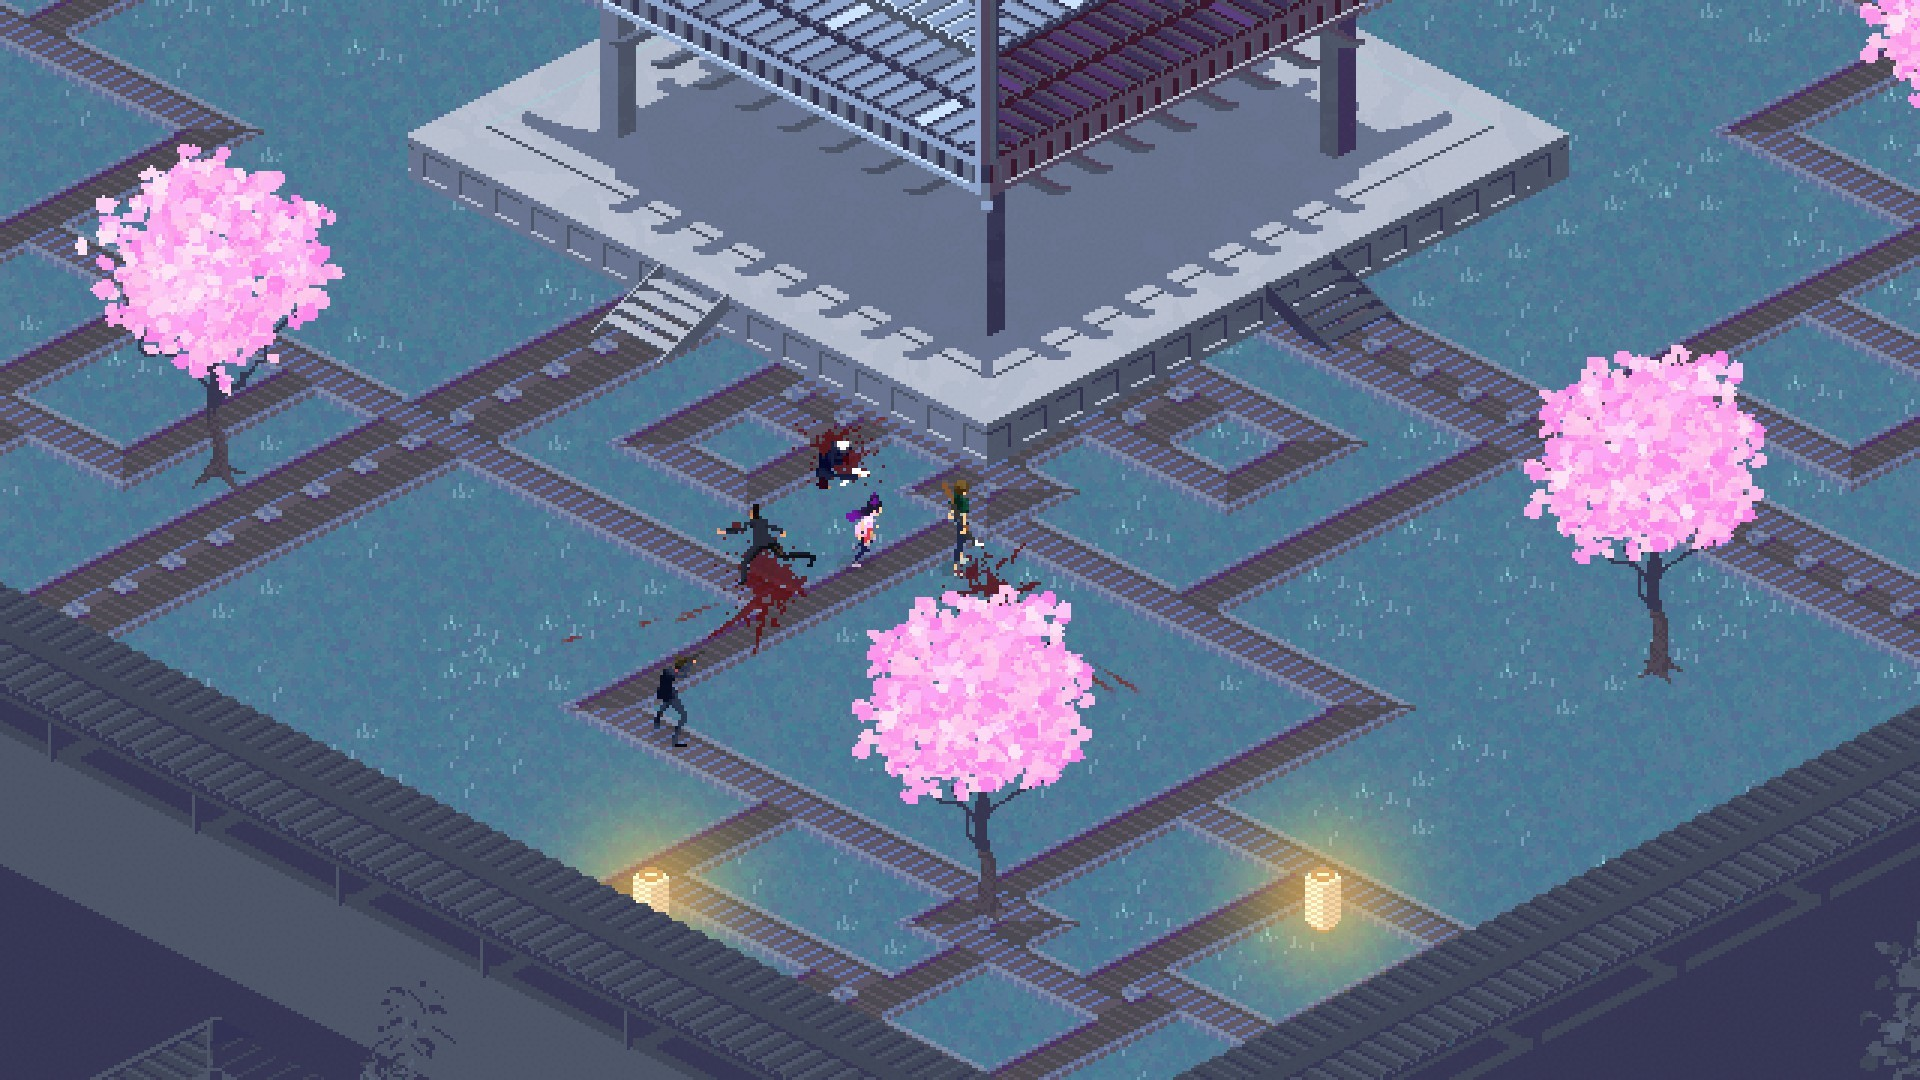 a tiny pixelated assassin runs around outside in the game Kate: Collateral Damage